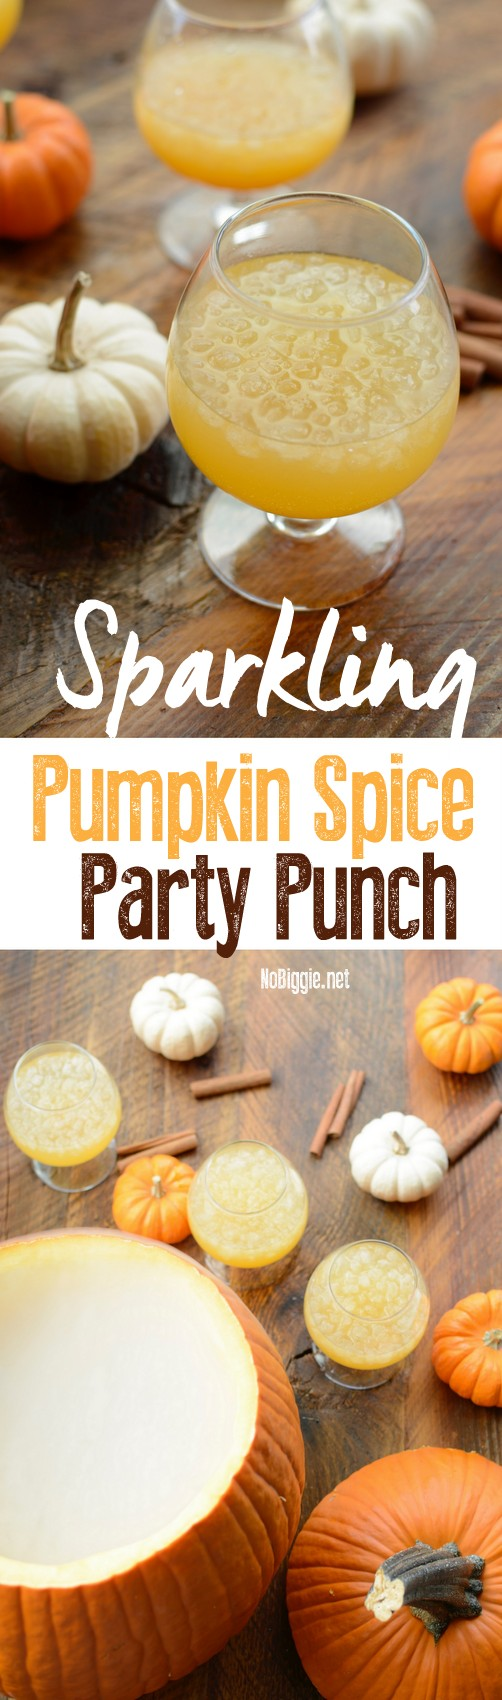 sparkling pumpkin spice party punch | NoBiggie.net